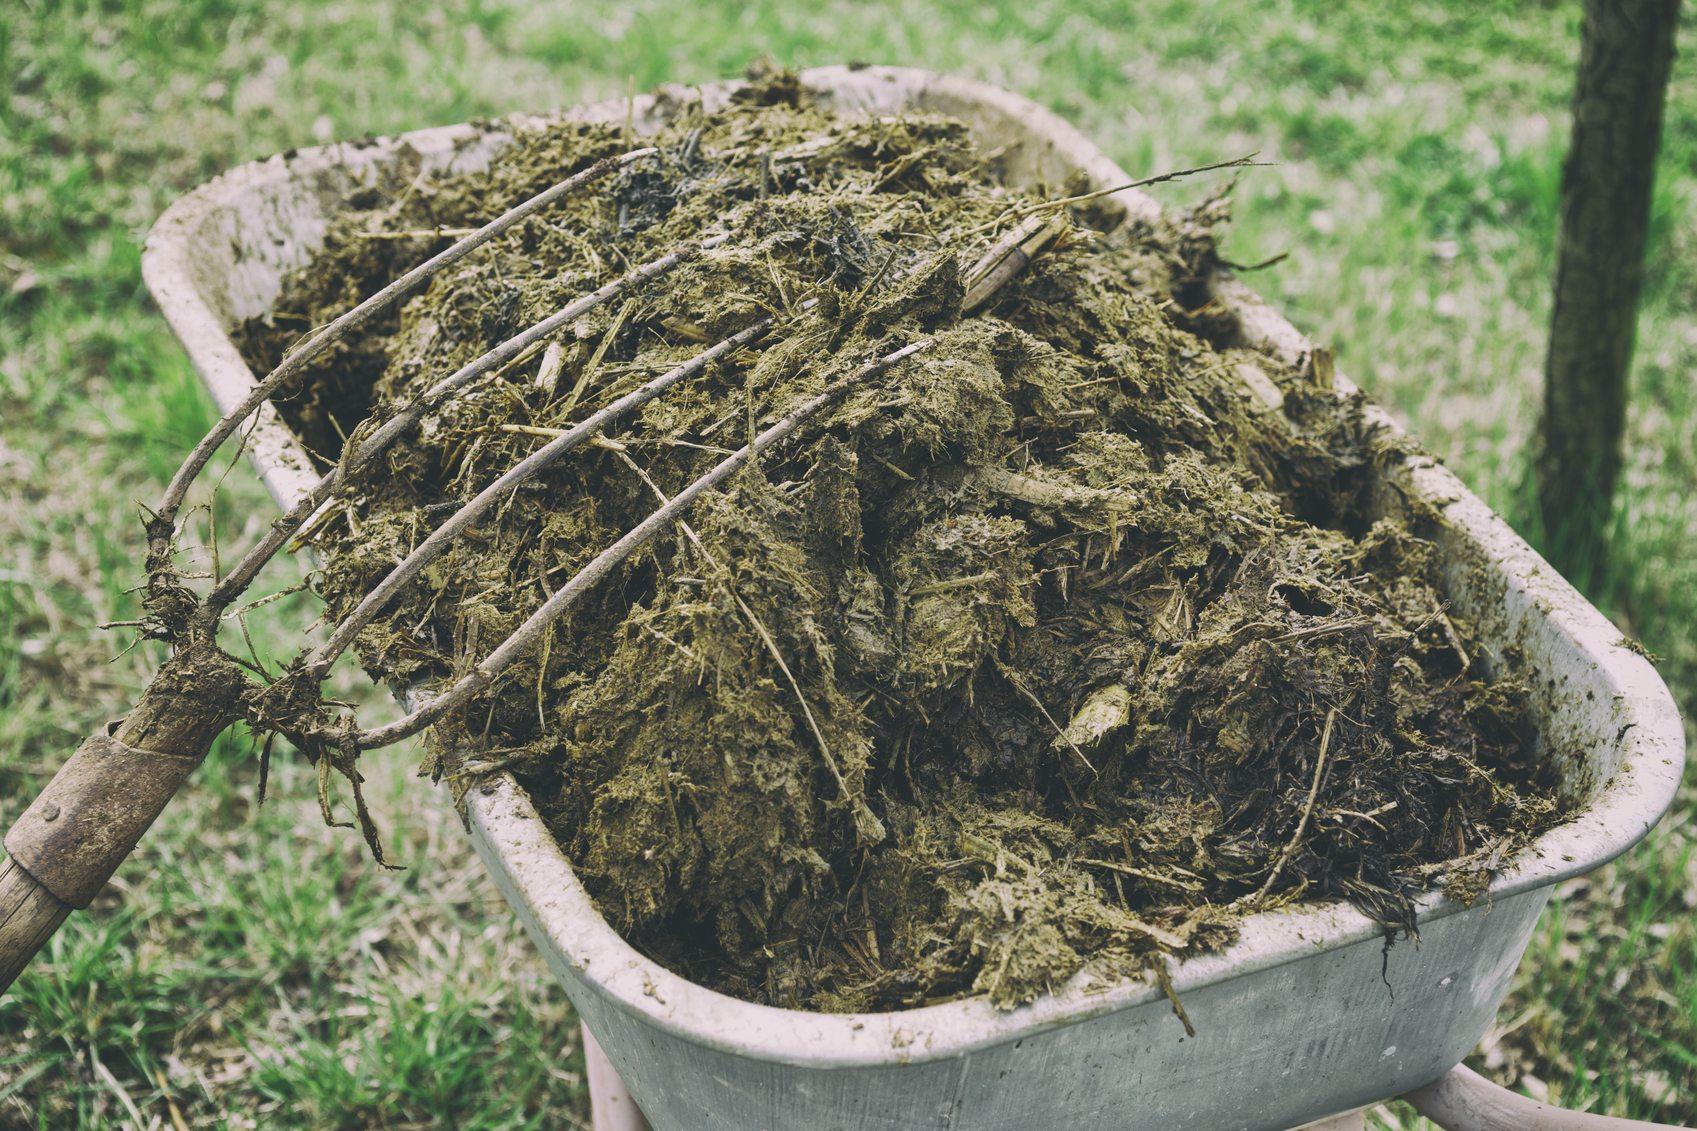 Best Lawn Fertilizer >> Different Types Of Animal Manure: Pros And Cons Of Using Manure As Fertilizer